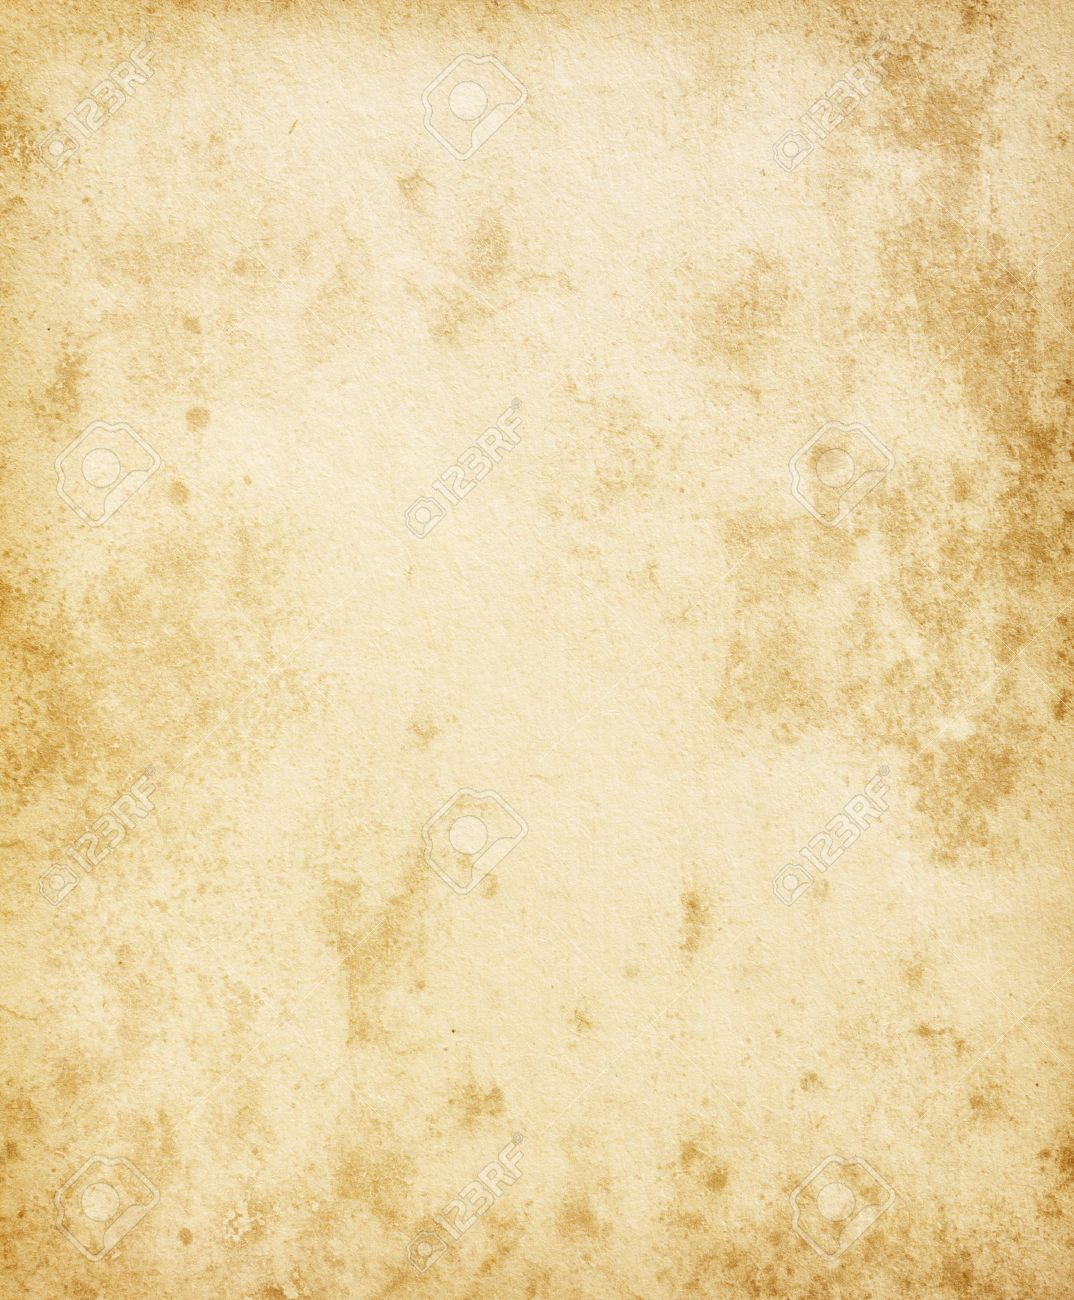 Vintage Paper Textures Old Worn Stock Photo Picture And